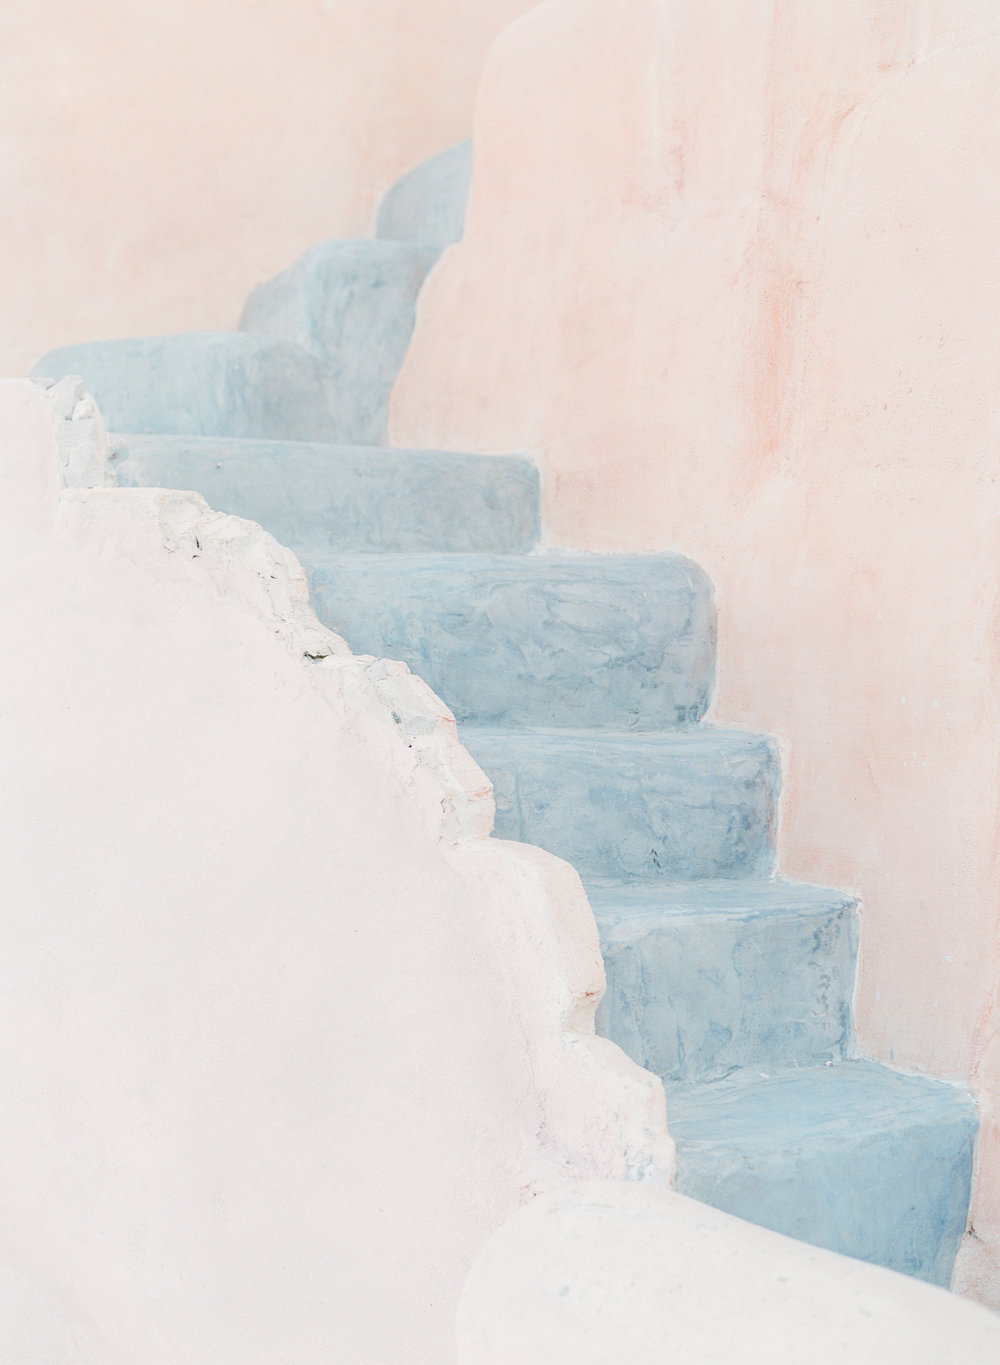 mollycarr-travel-destinationphotography-creativetravel-artists-filmphotography-unearthingtc-stairs-pastelcolors-colors-minimaldesign.JPG